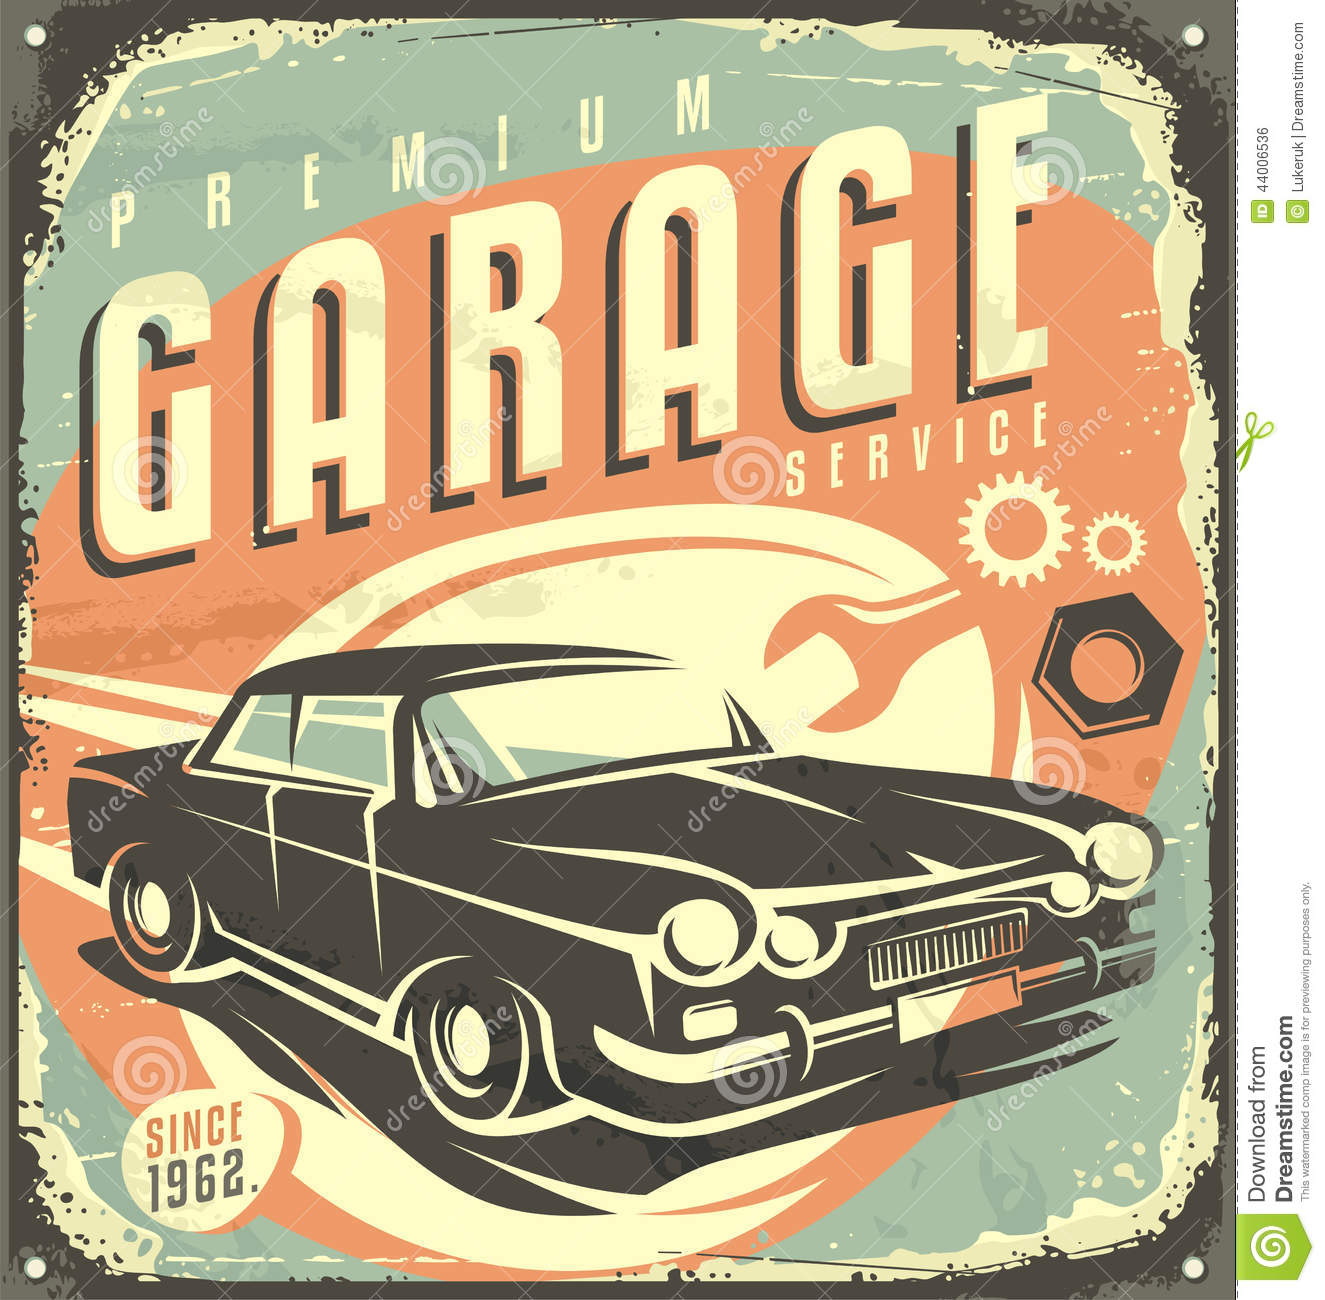 Vintage Tin Sign Automotive : Garage vintage metal sign stock vector illustration of